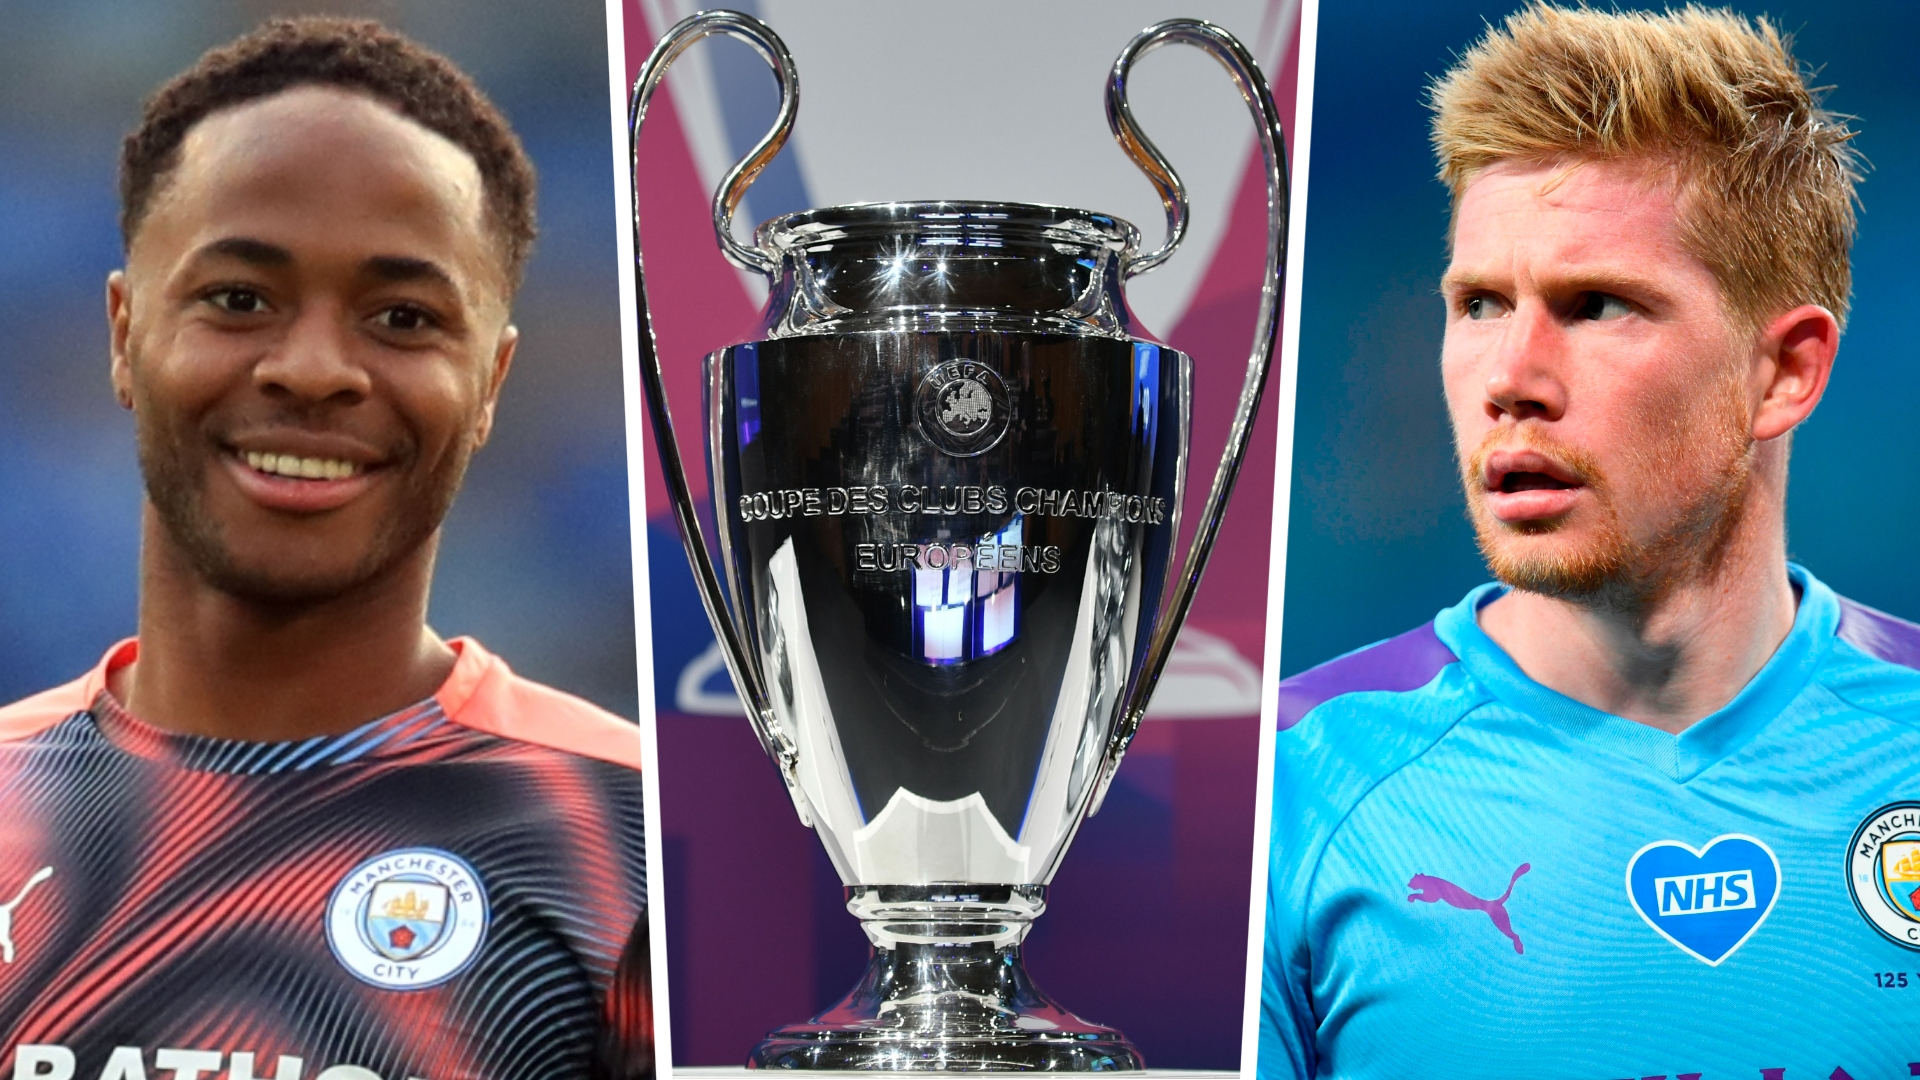 Manchester City to play in Champions League next season after 2-year UEFA ban lifted on appeal 1